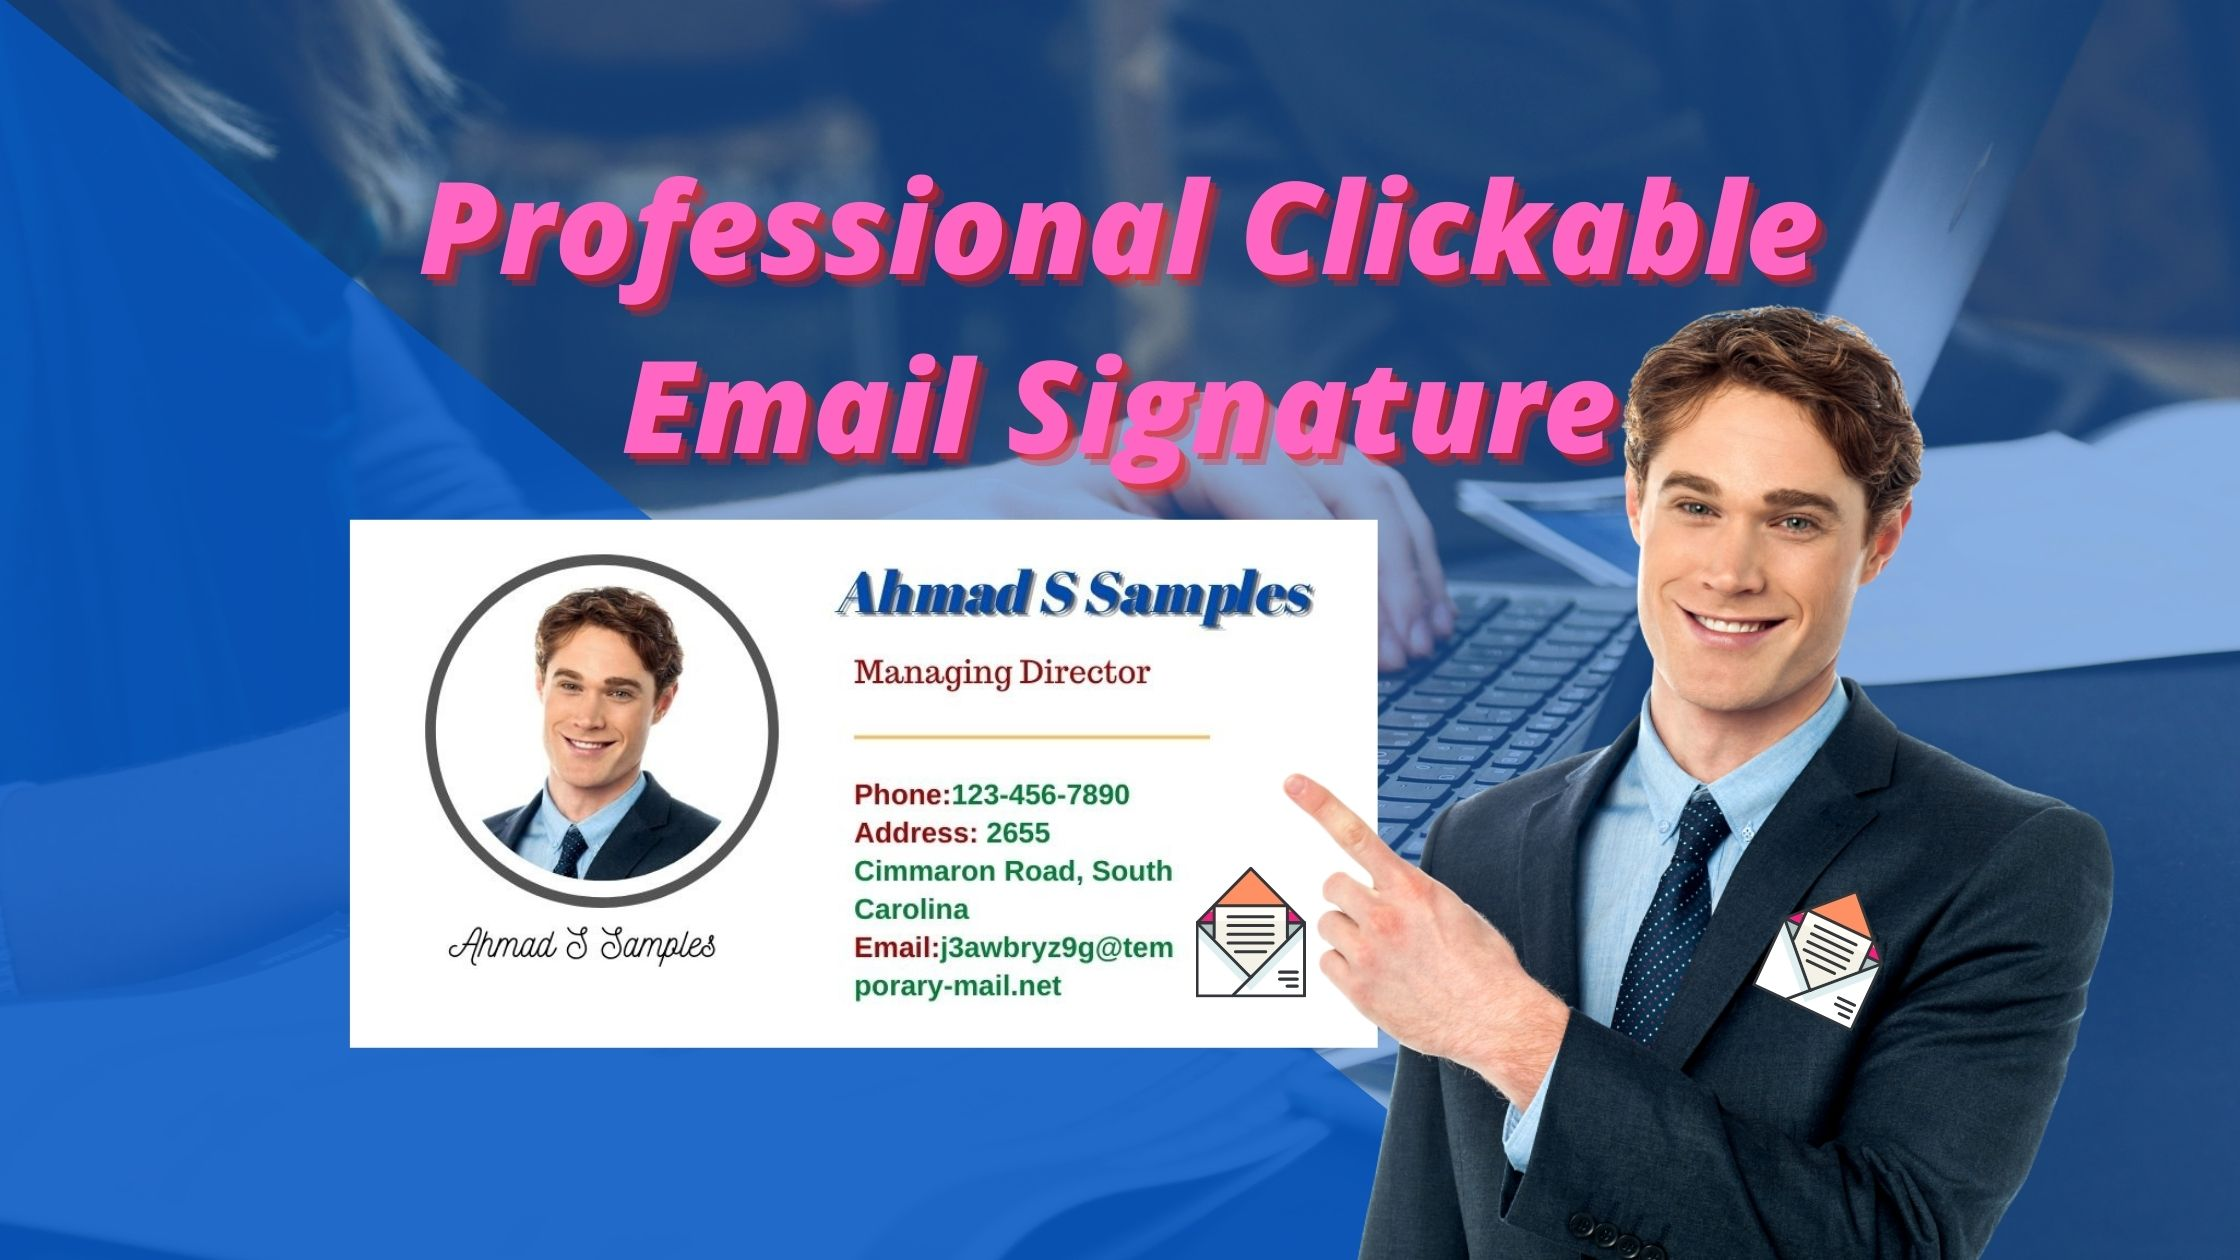 I will design a professional clickable email signature for you